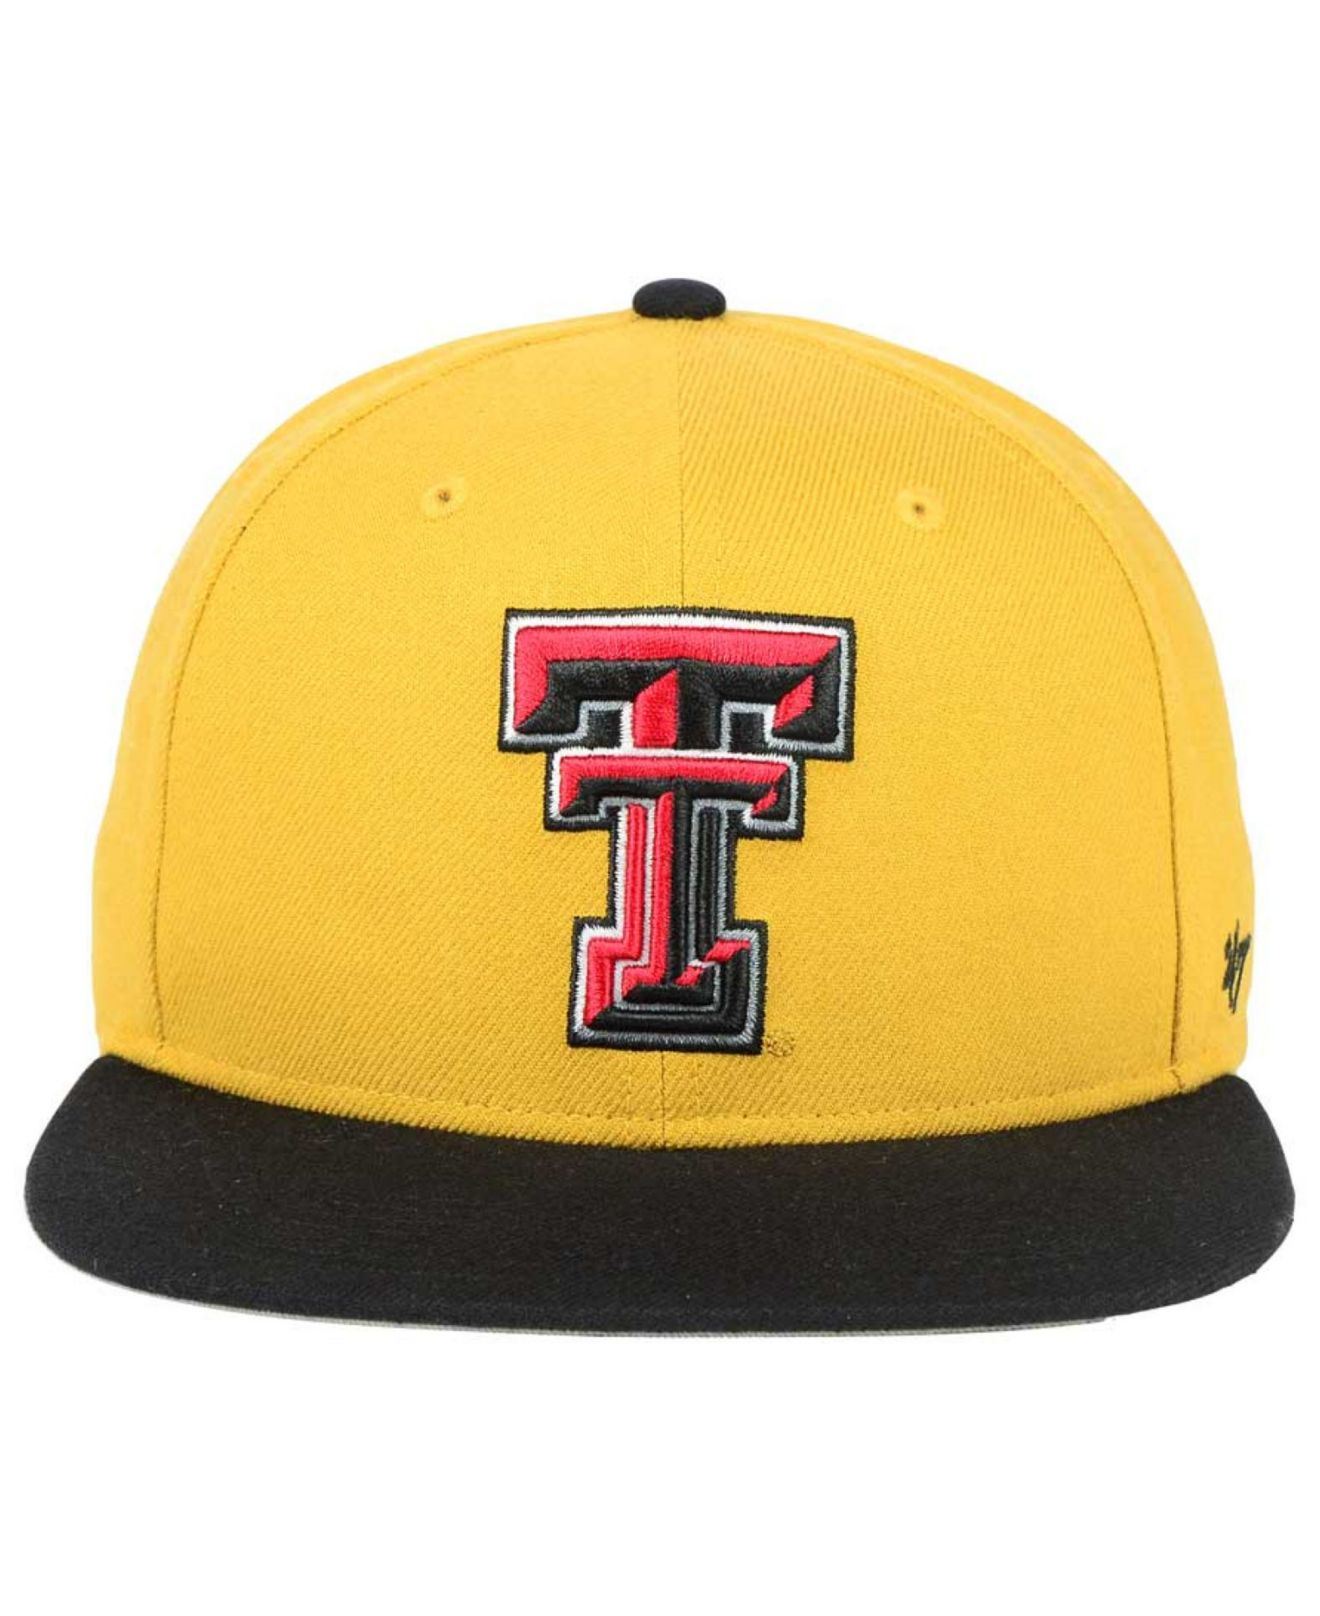 023ab083122 Lyst - 47 Brand Texas Tech Red Raiders Sure Shot Snapback Cap in ...